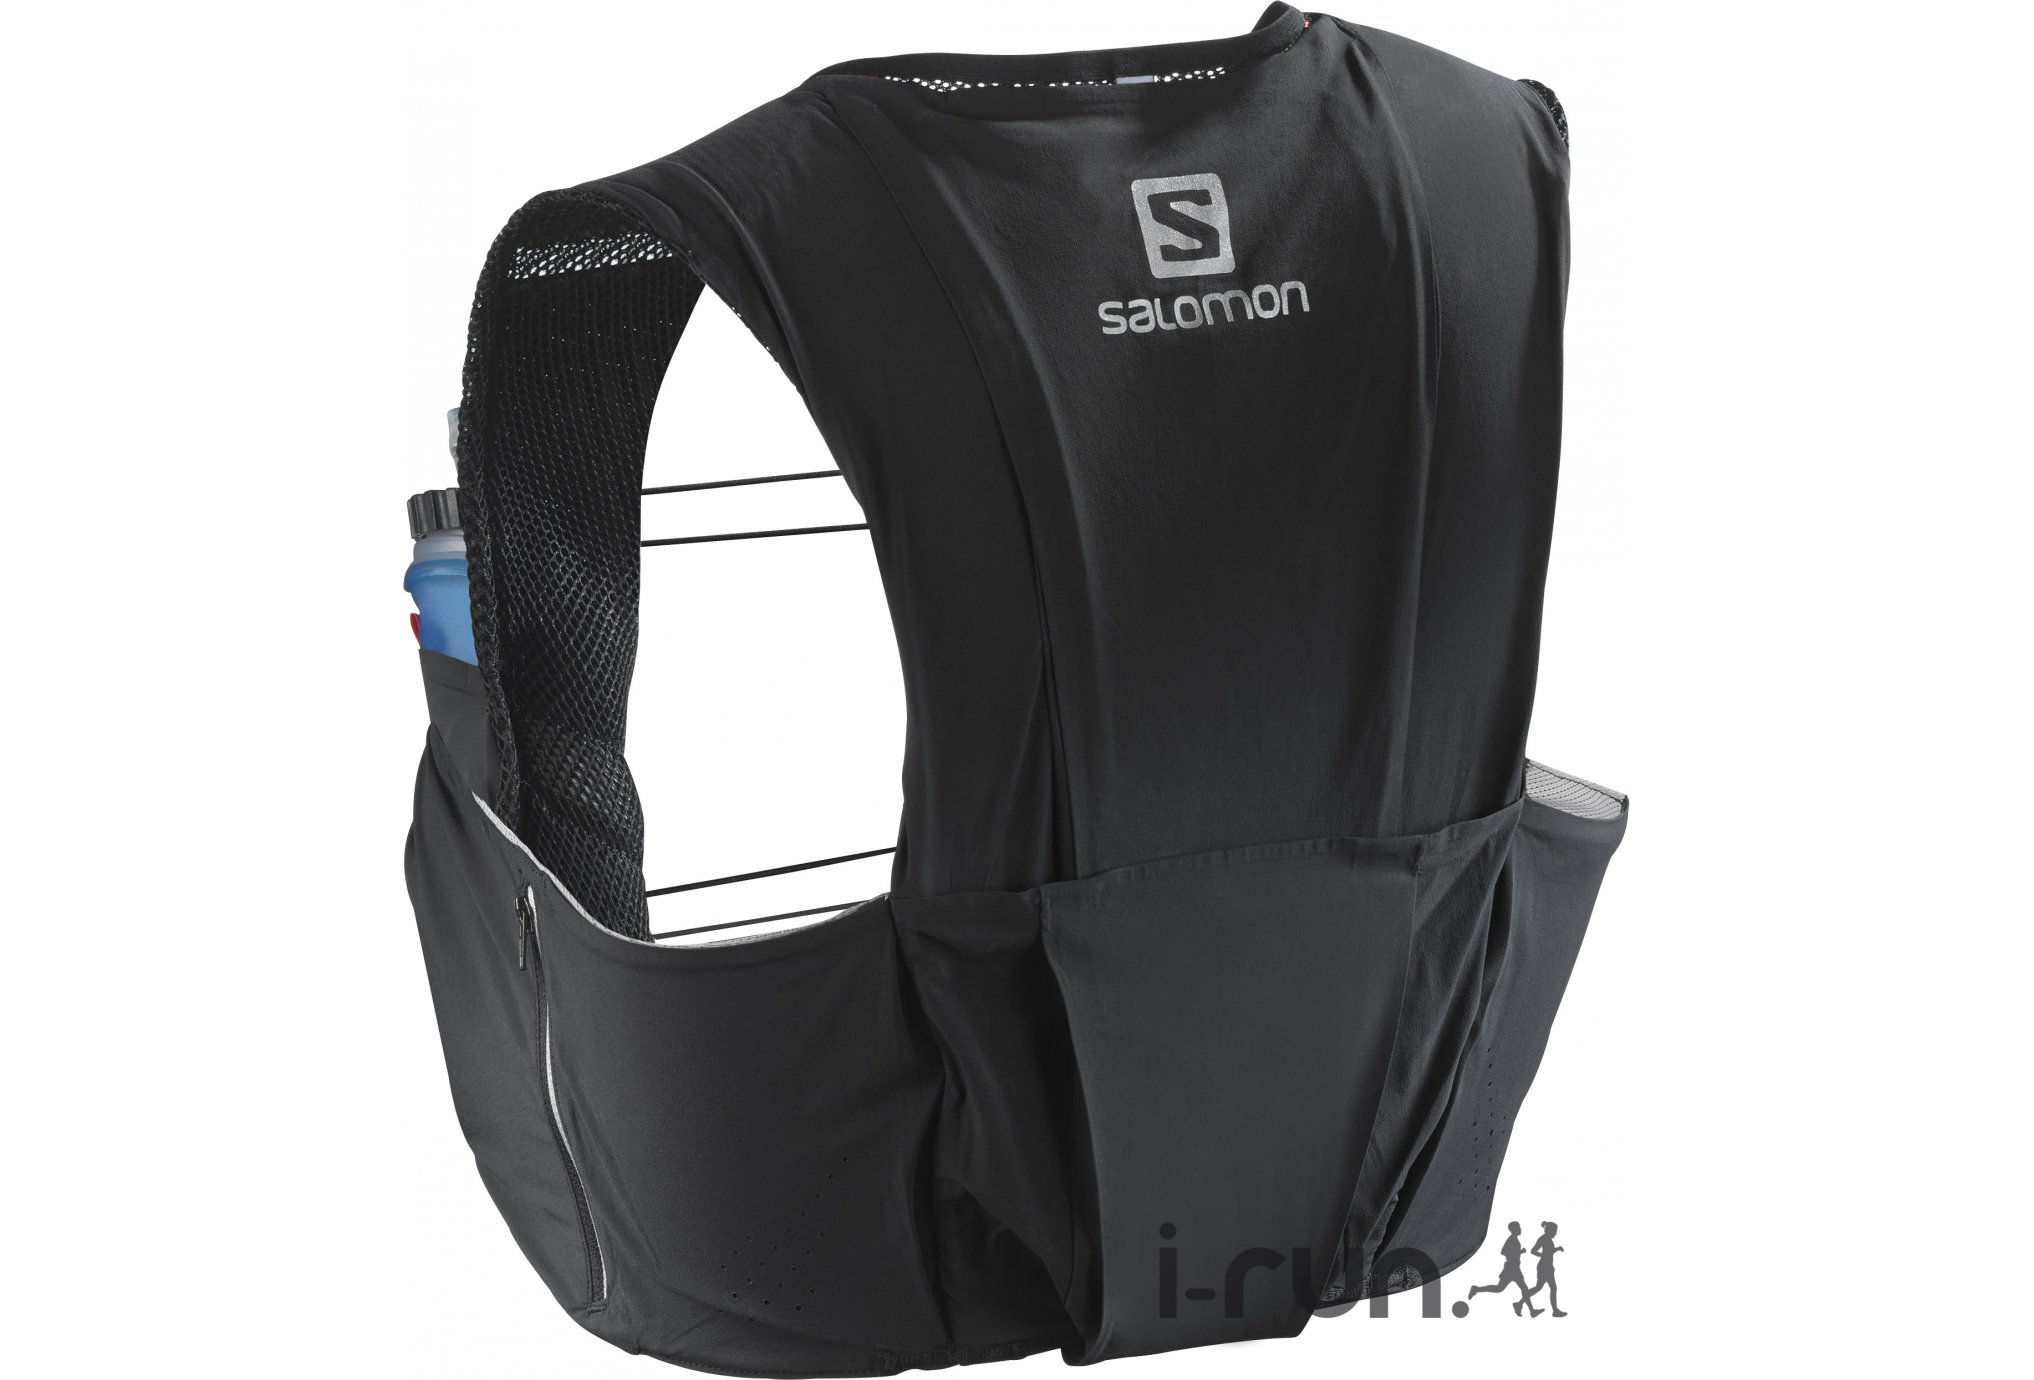 Salomon S-Lab Sense Ultra 8 SET Sac hydratation / Gourde